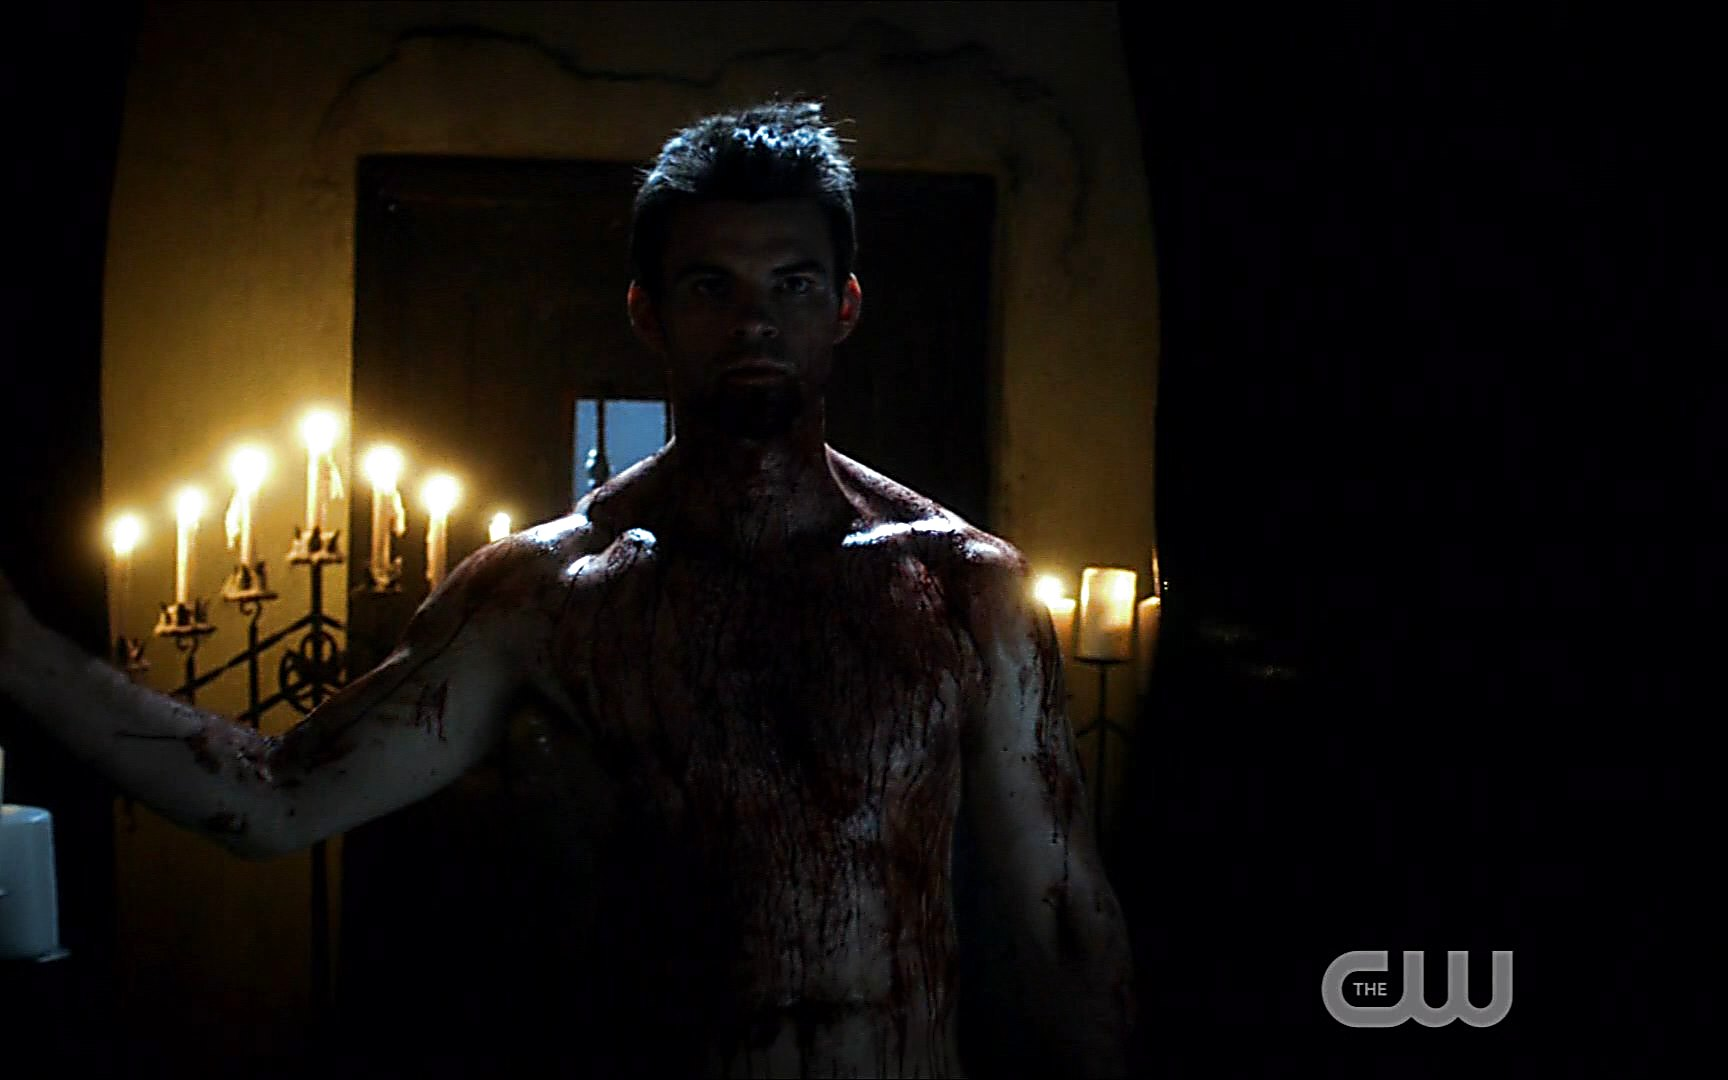 Daniel Gillies sexy shirtless scene November 4, 2014, 1am